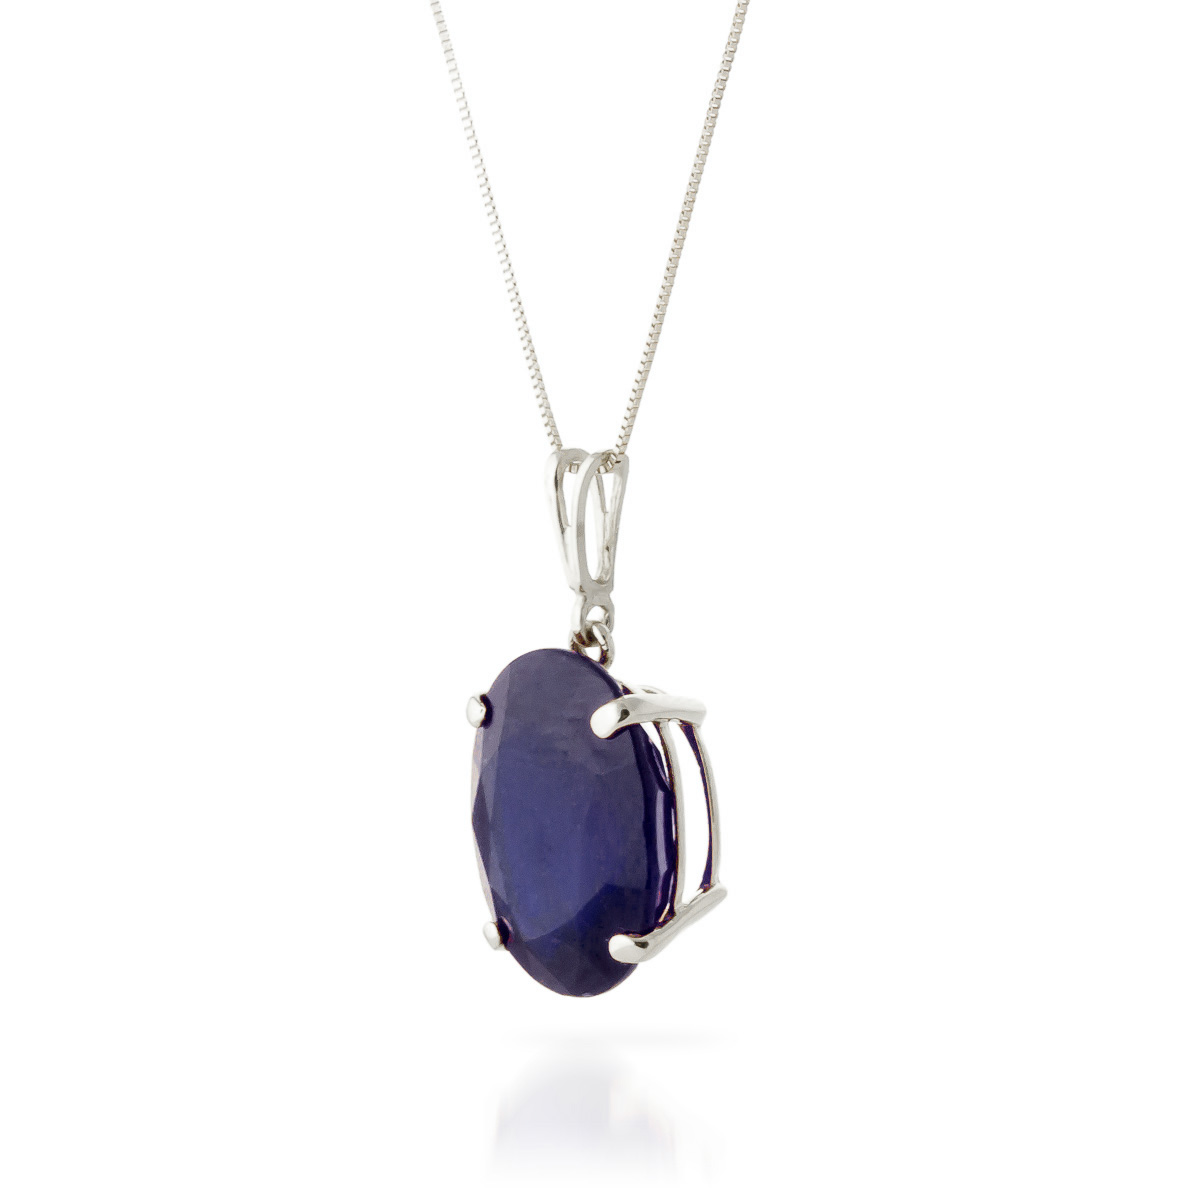 Oval Cut Sapphire Pendant Necklace 8.5ct in 9ct White Gold